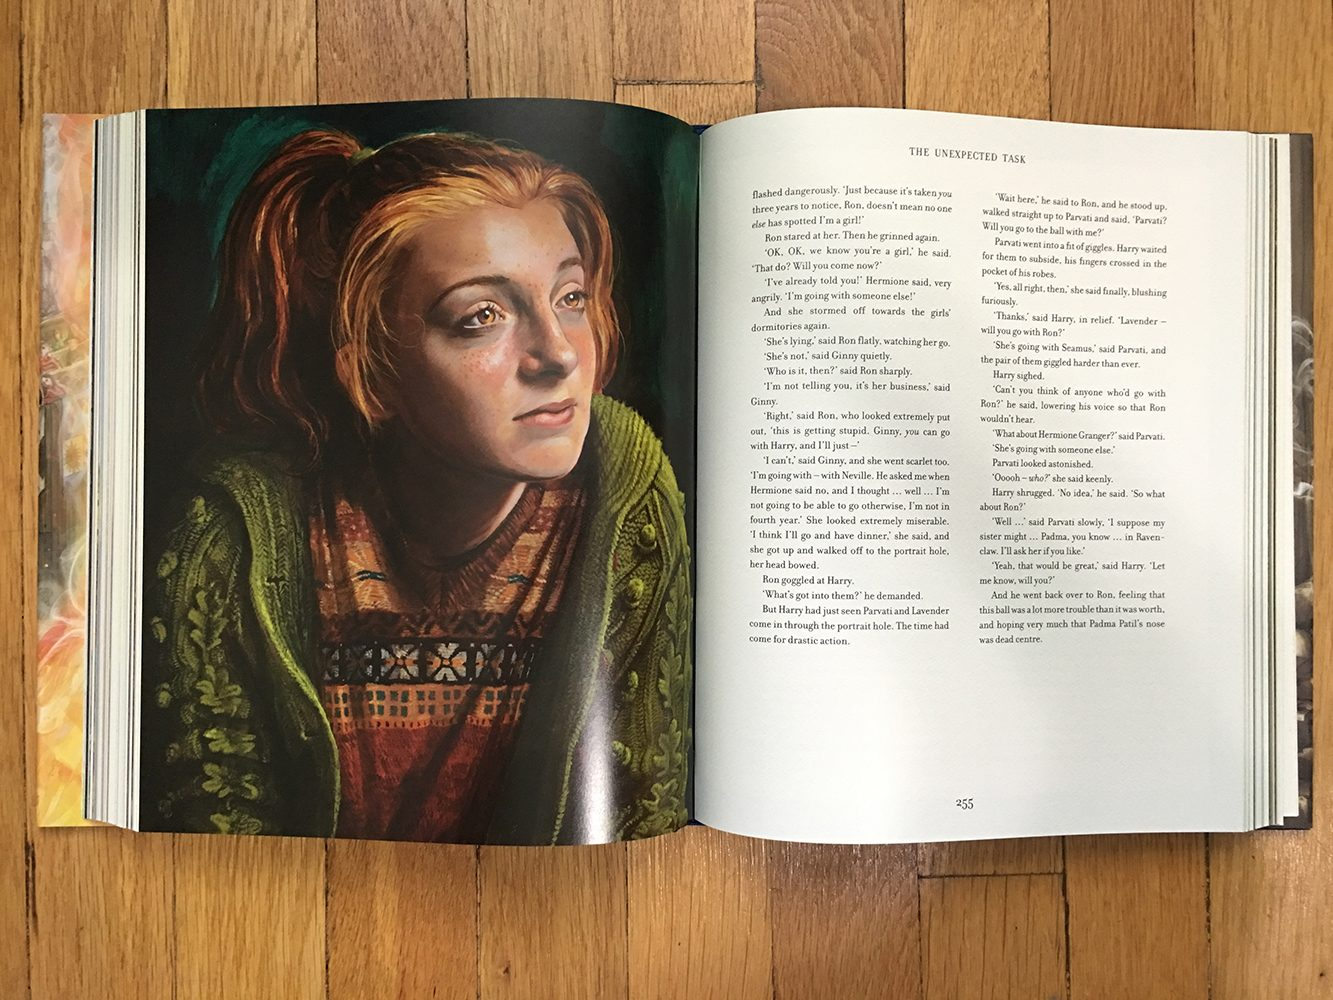 Ginny full-page spread